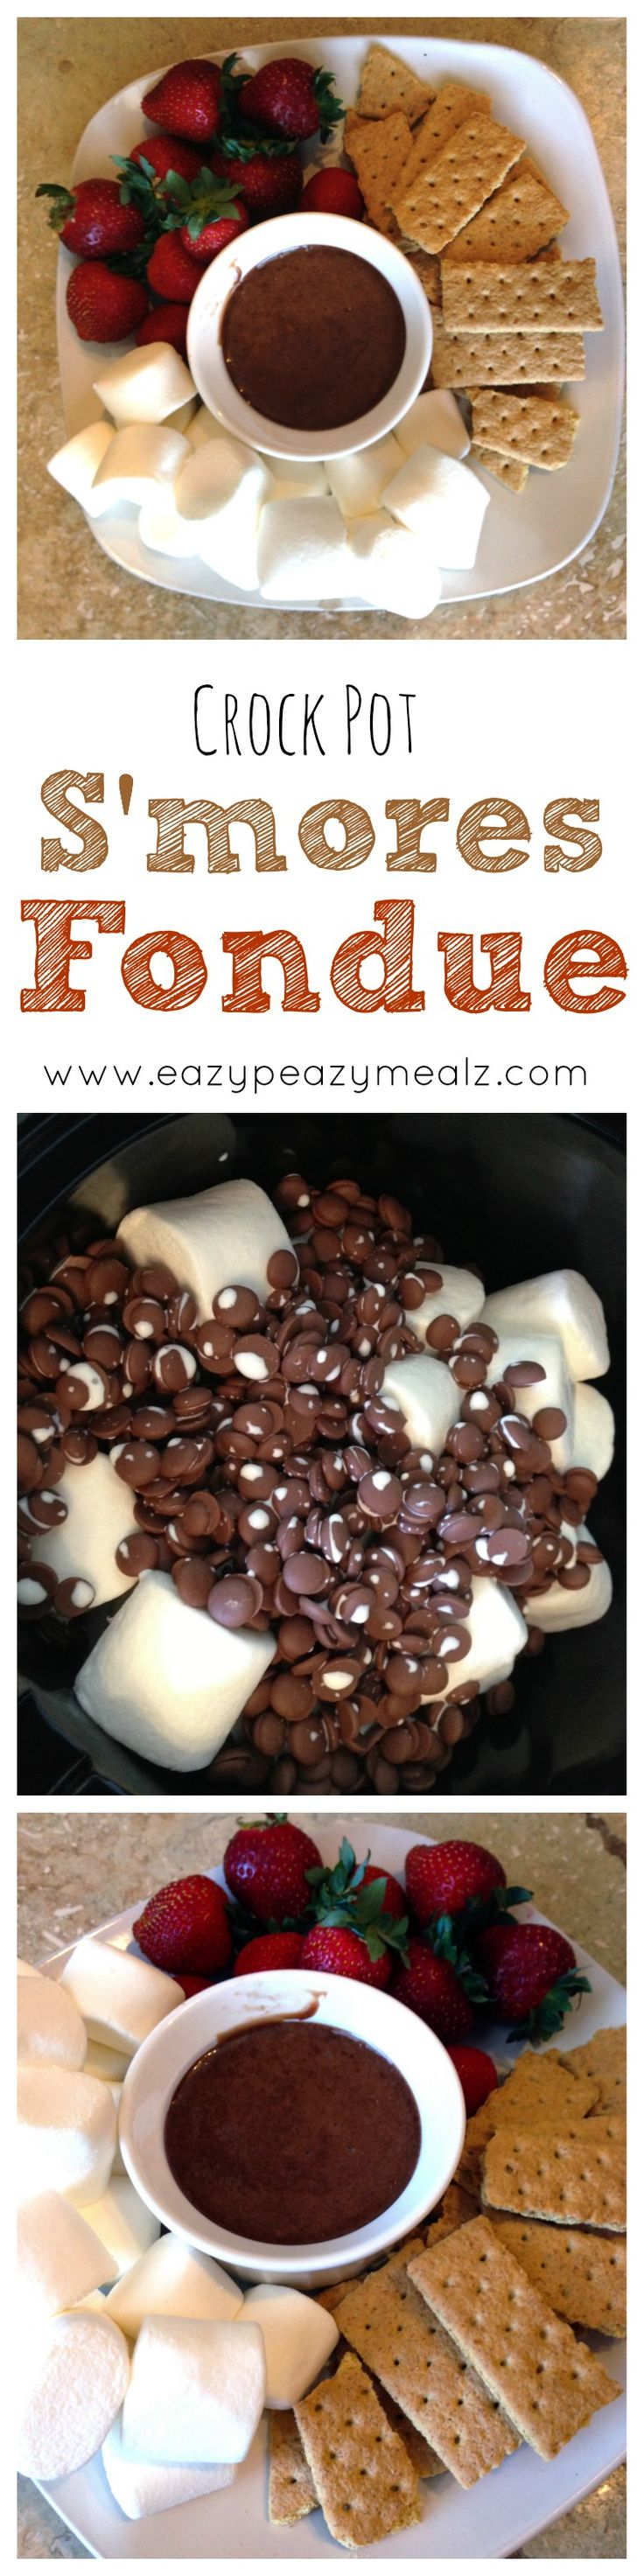 Crock Pot Smores Fondue: Throw a few simple ingredients in the crock pot, let cook, and you have this absolutely sinful S'MORES Fondue! Amazing stuff. Perfect for dinner parties. - Eazy Peazy Mealz